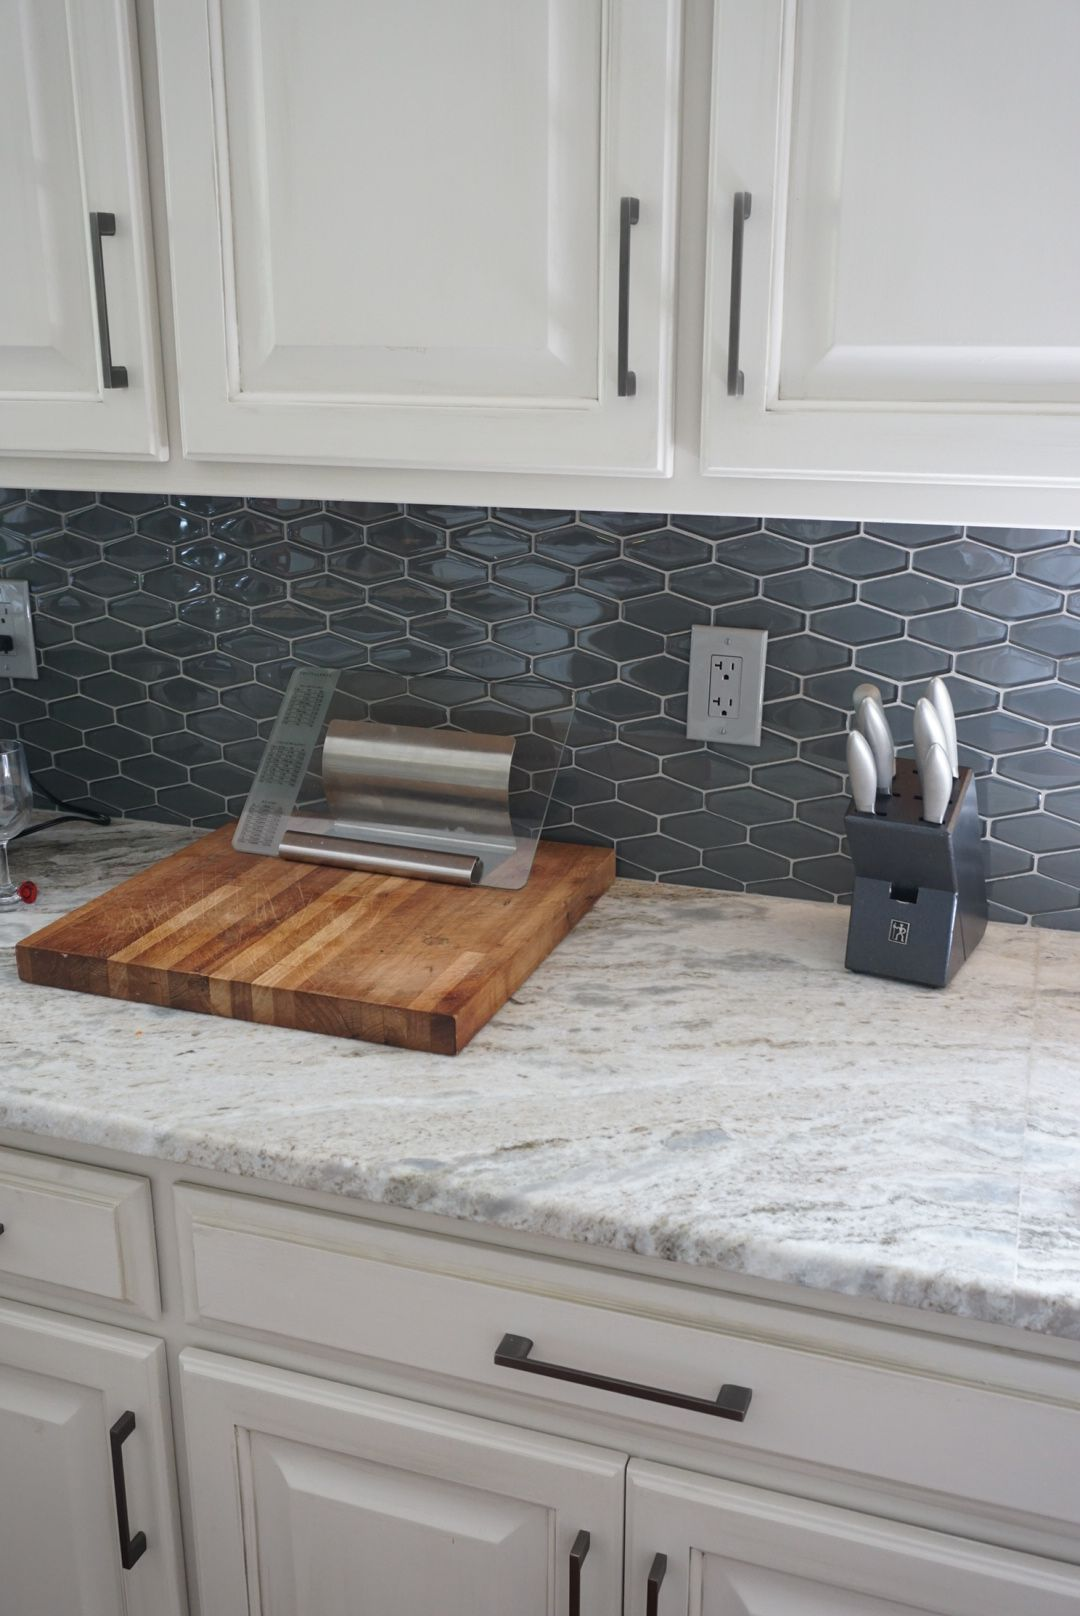 Amazing And Unique Ideas Can Change Your Life Granite Backsplash